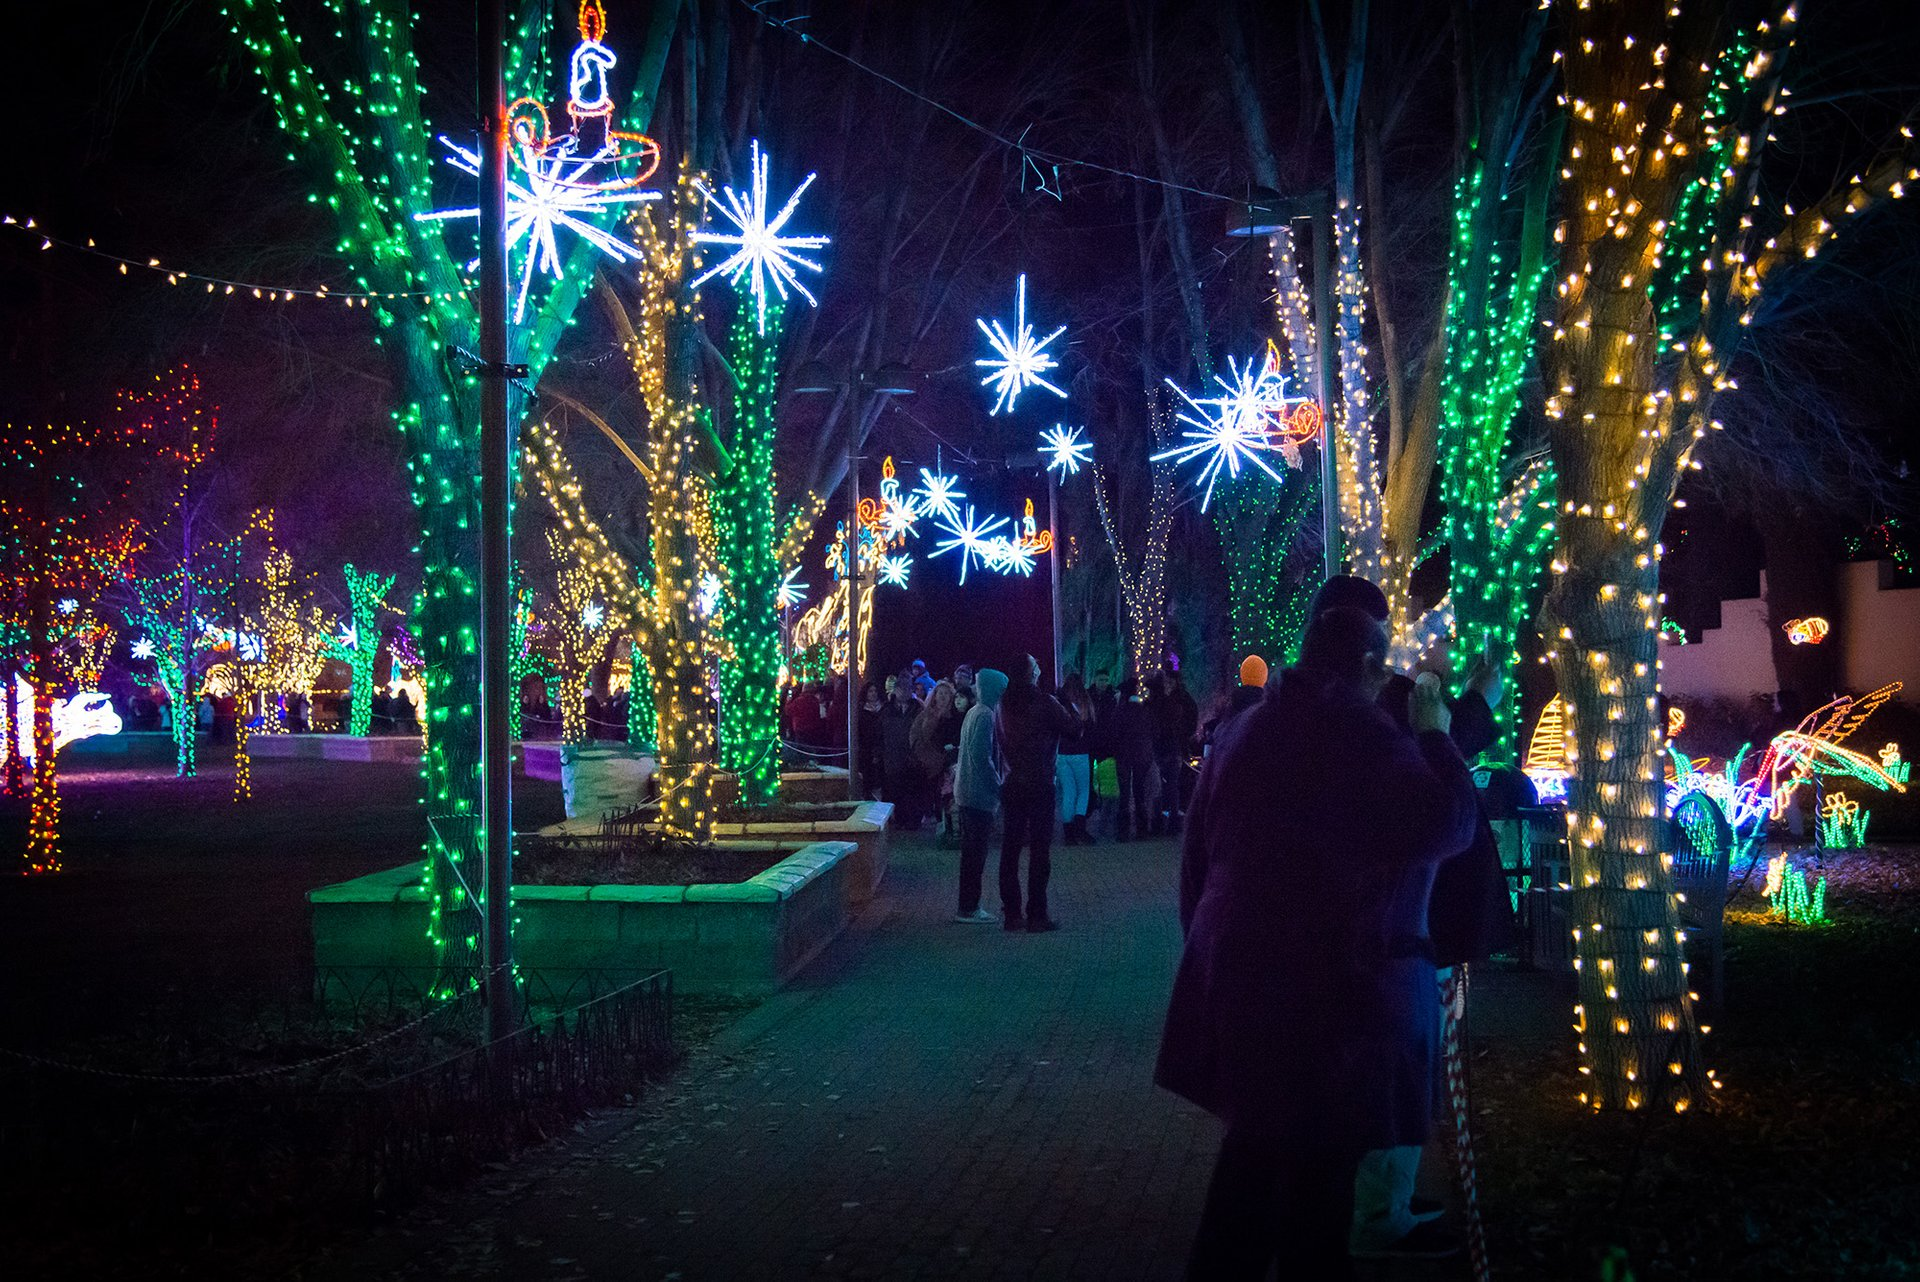 River of Lights in Albuquerque in New Mexico - Best Season 2020